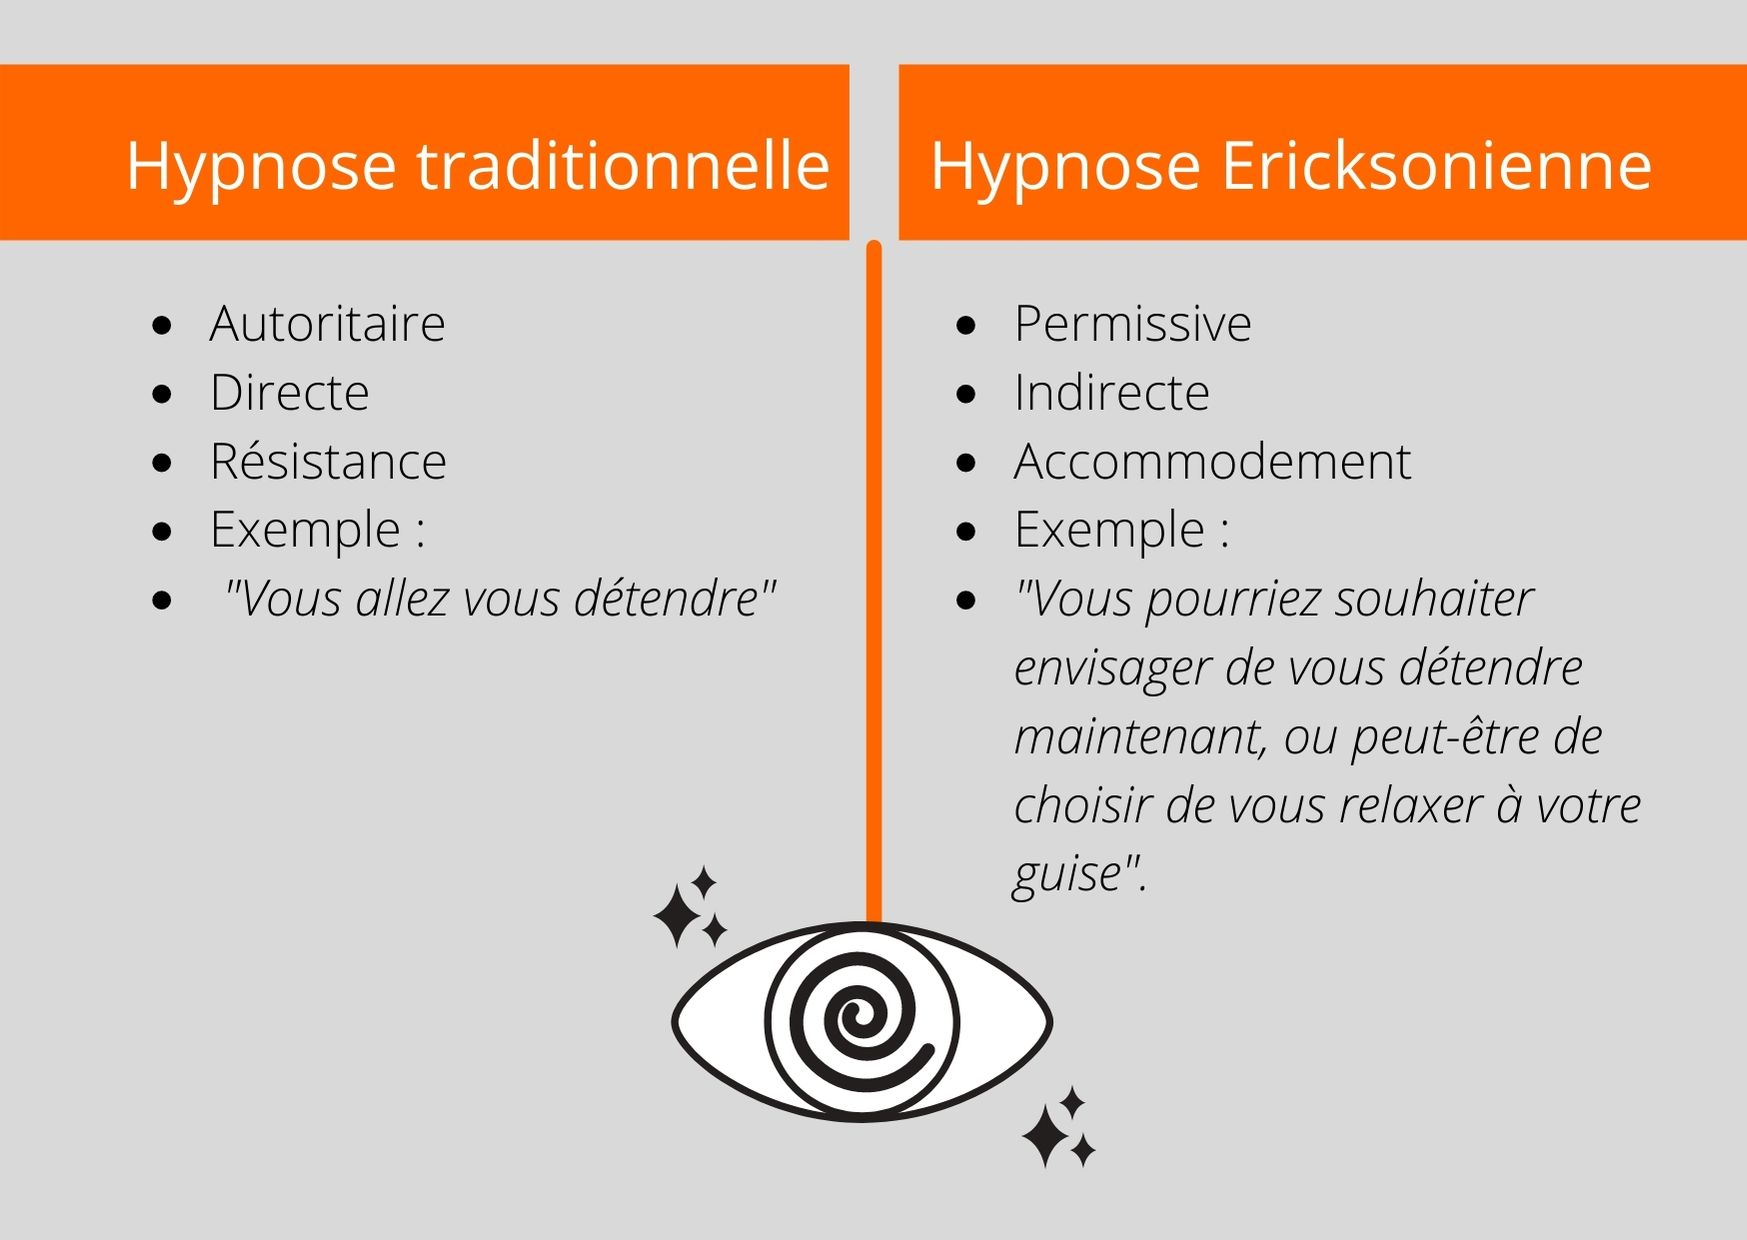 Hypnose traditionnelle vs hypnose ericksonienne